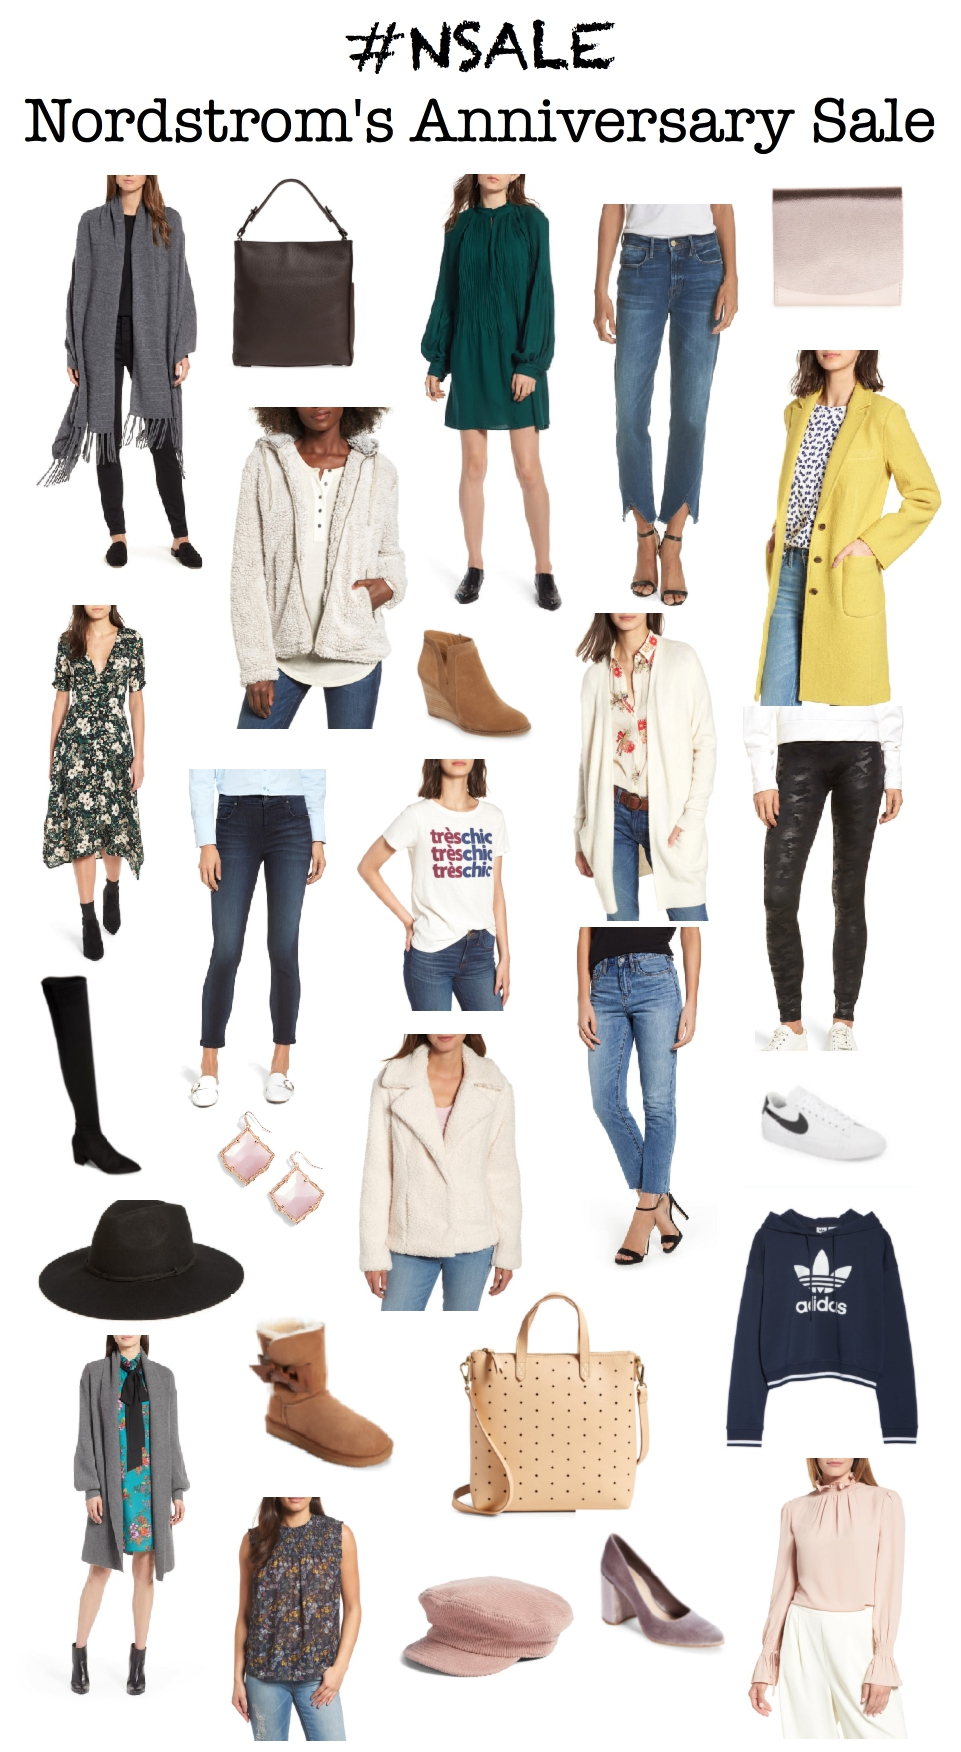 christmas, in july, nsale, nordstrom anniversary sale, how to shop the nordstrom sale